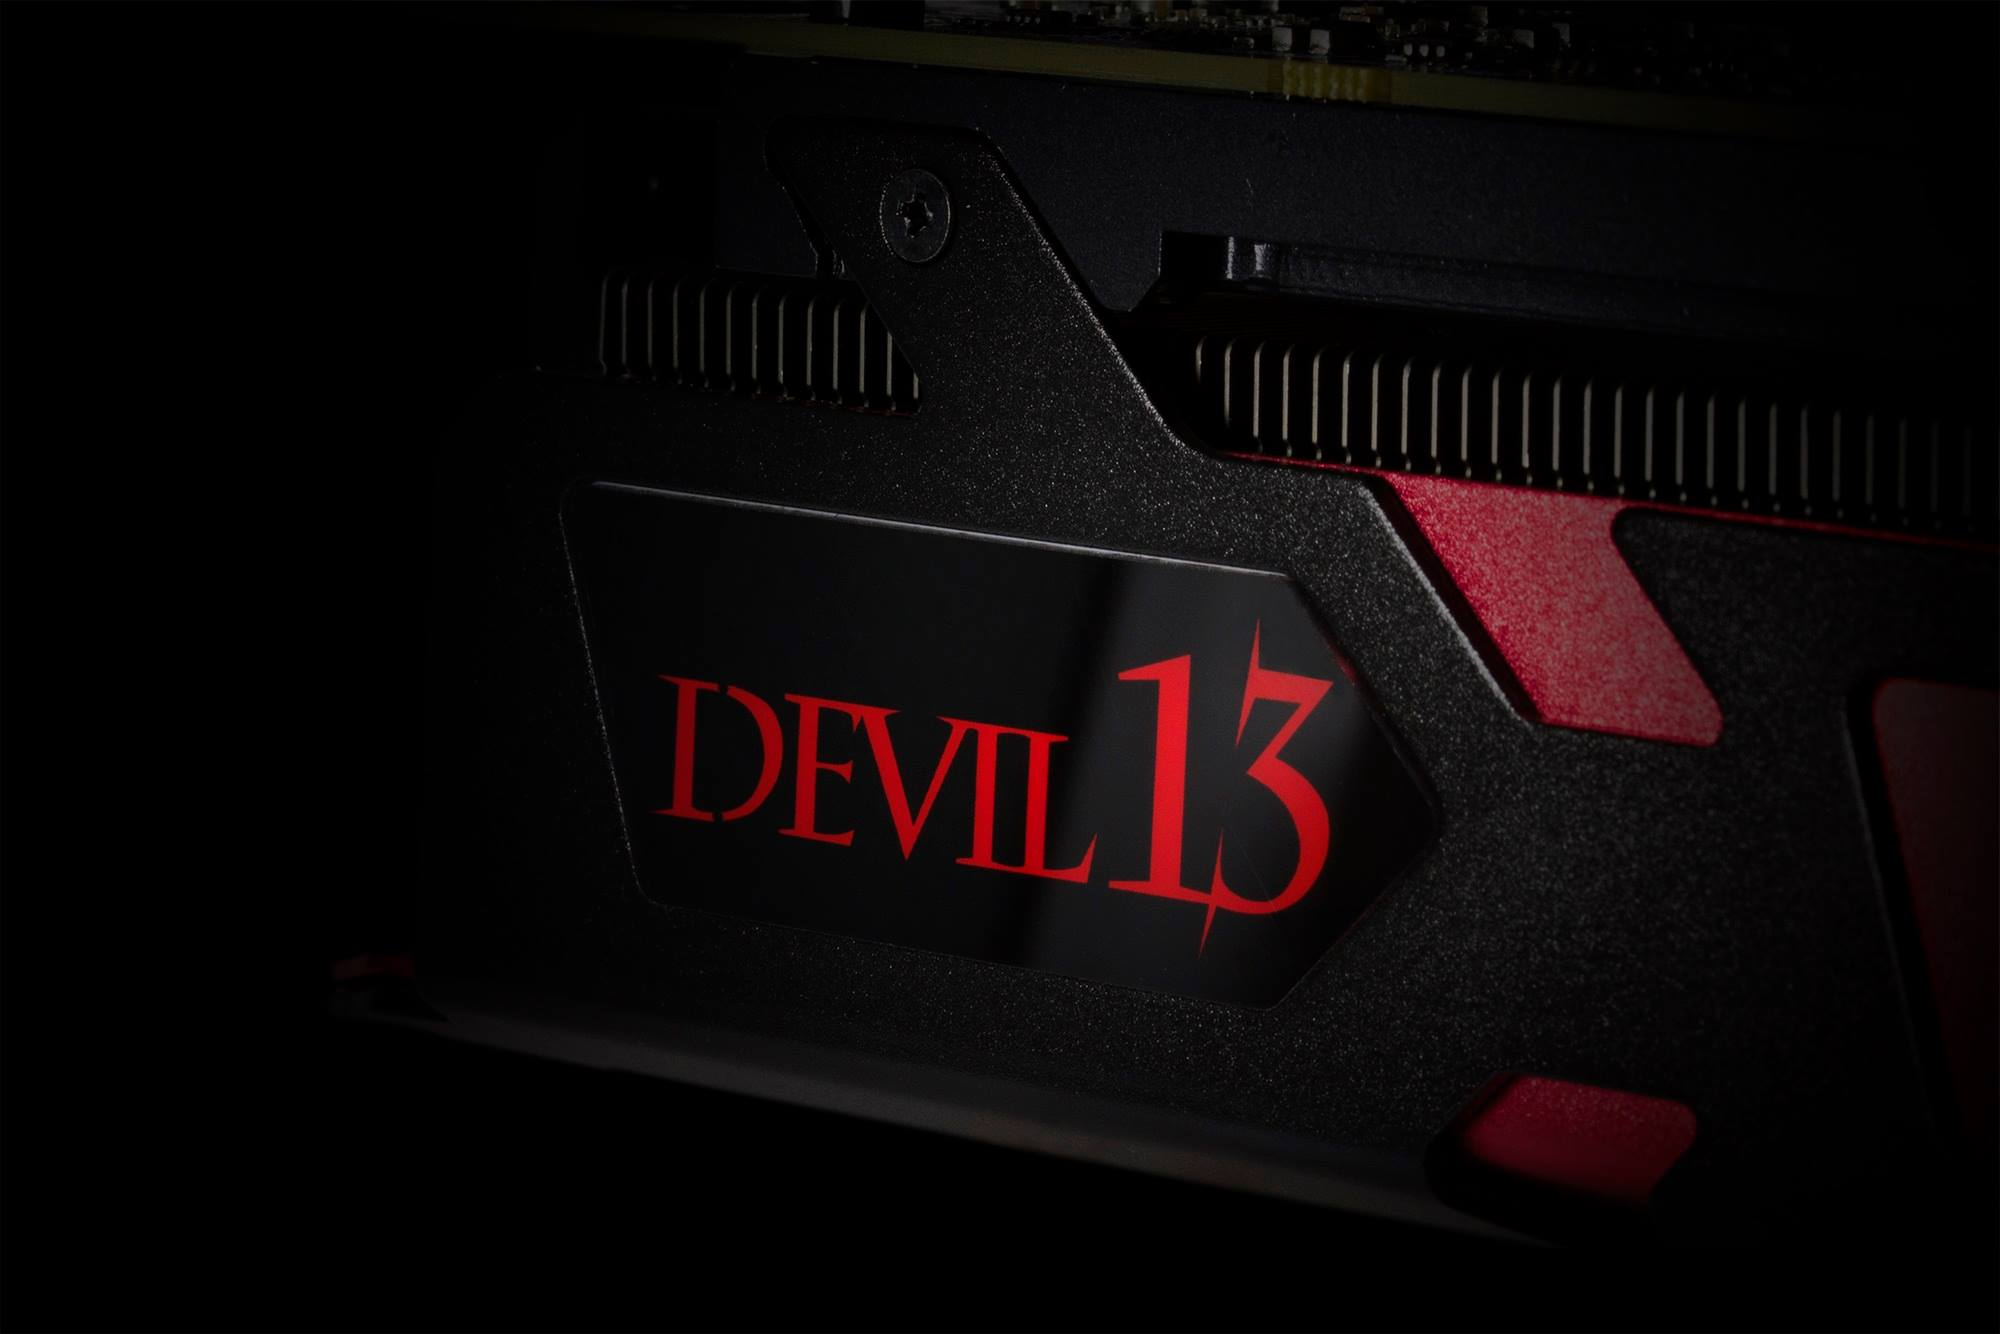 Powercolor Devil 13 R9 295x2 Video Cards Needs Four 8 Pin